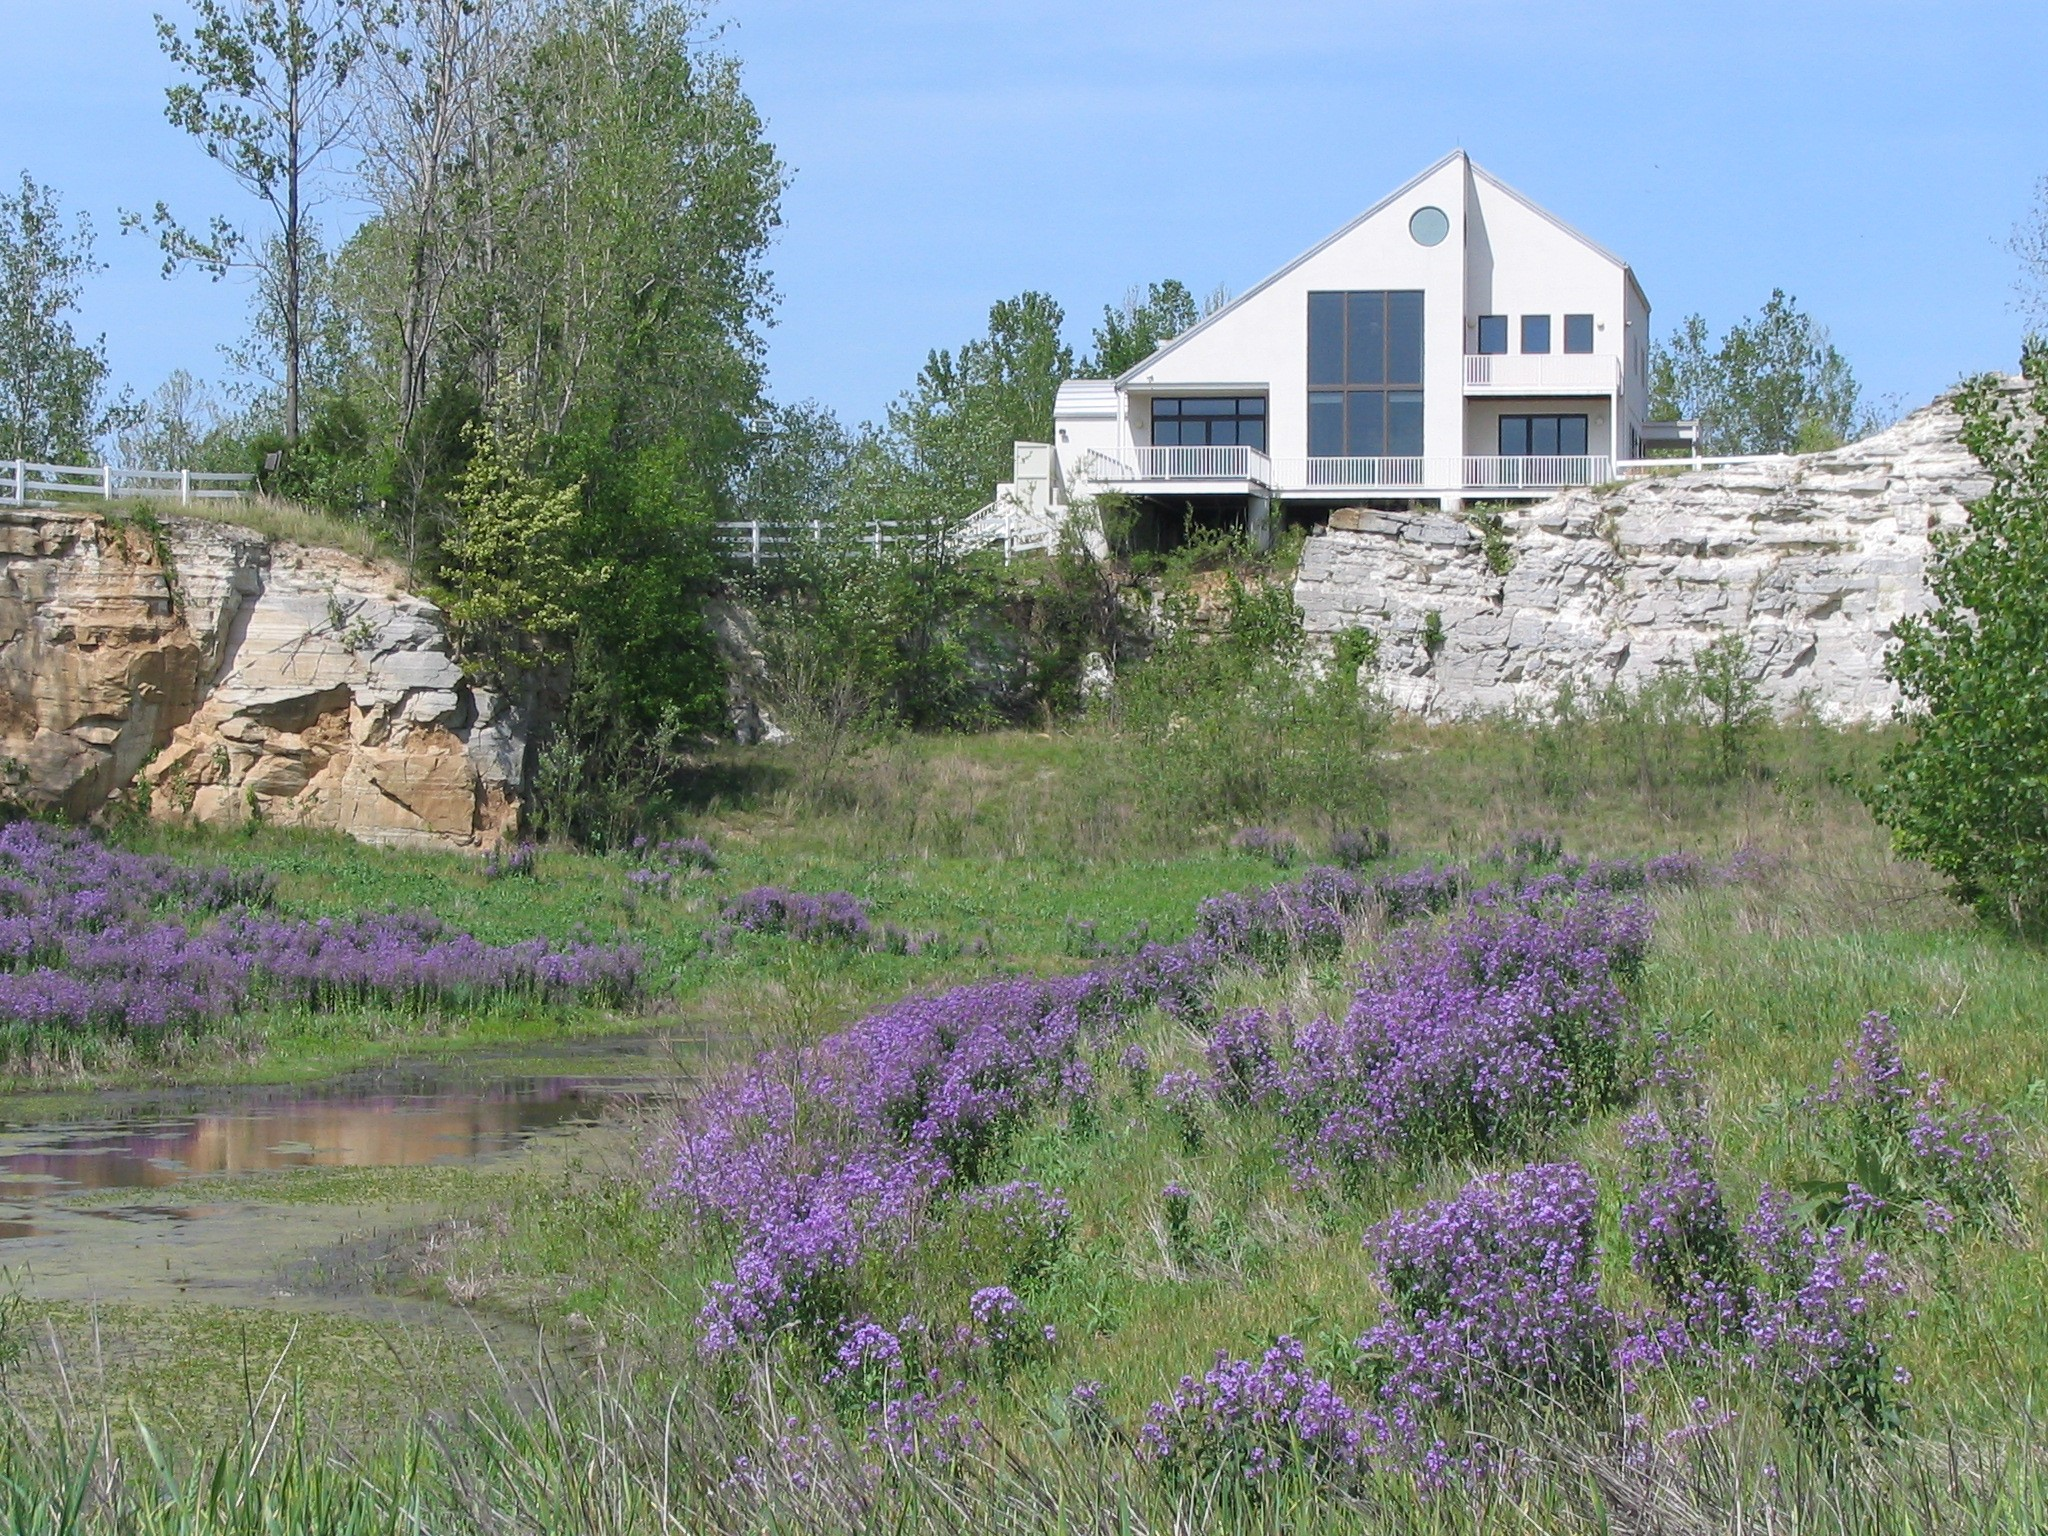 Klondike Park Conference Center and flowers